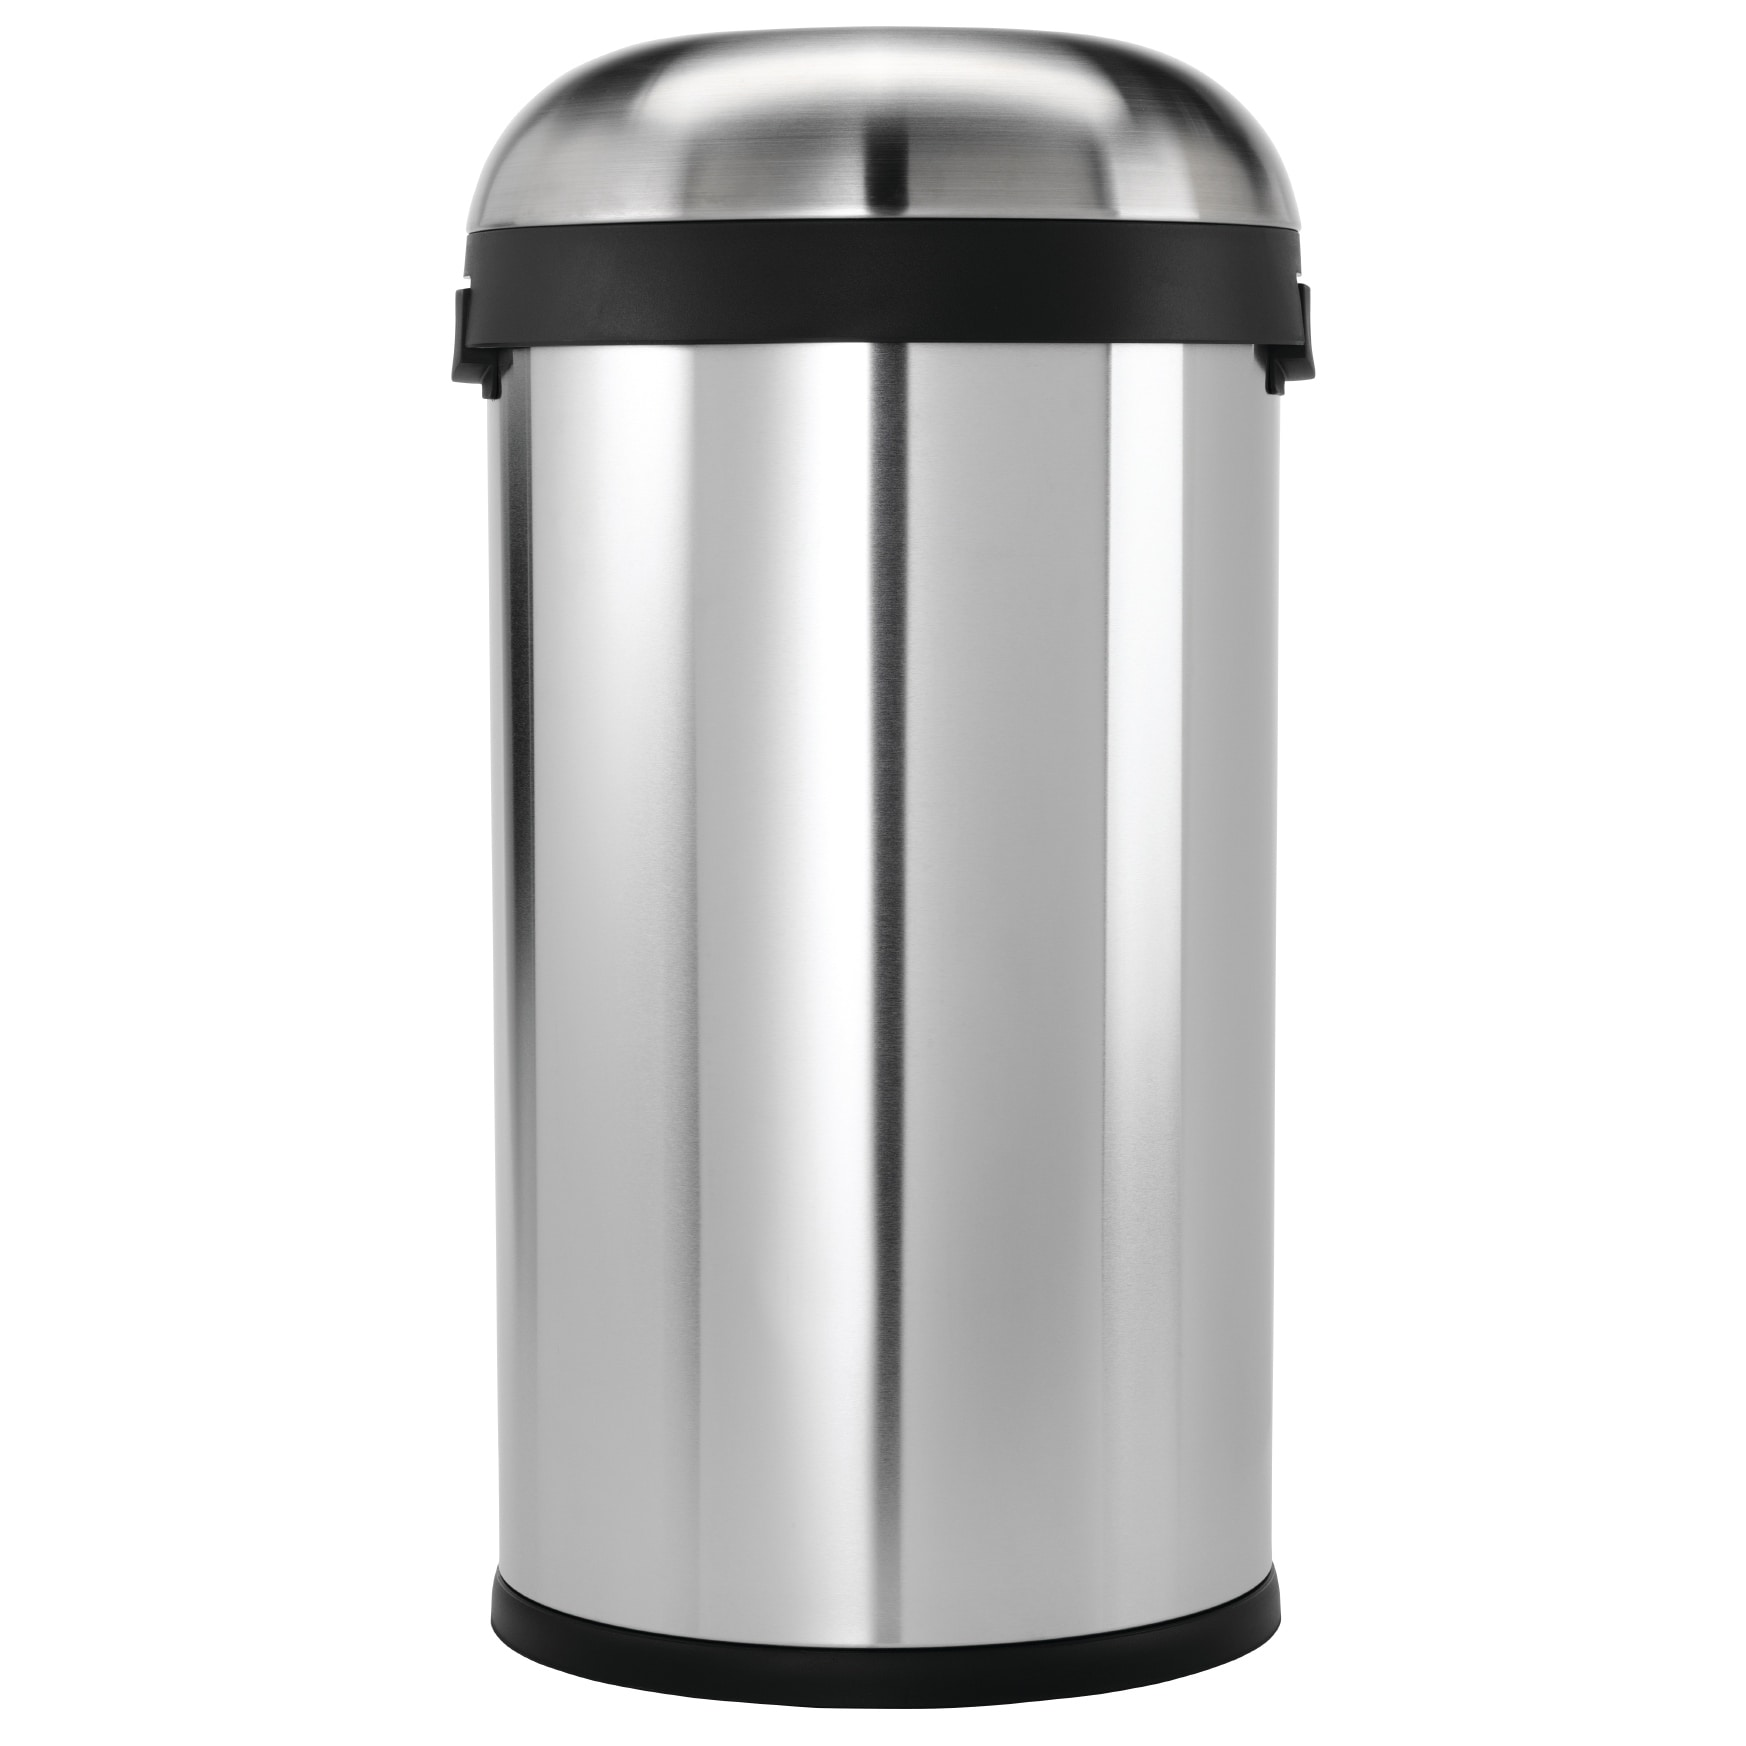 Simplehuman Bullet Open Brushed Stainless Steel 16 gallon Trash Can